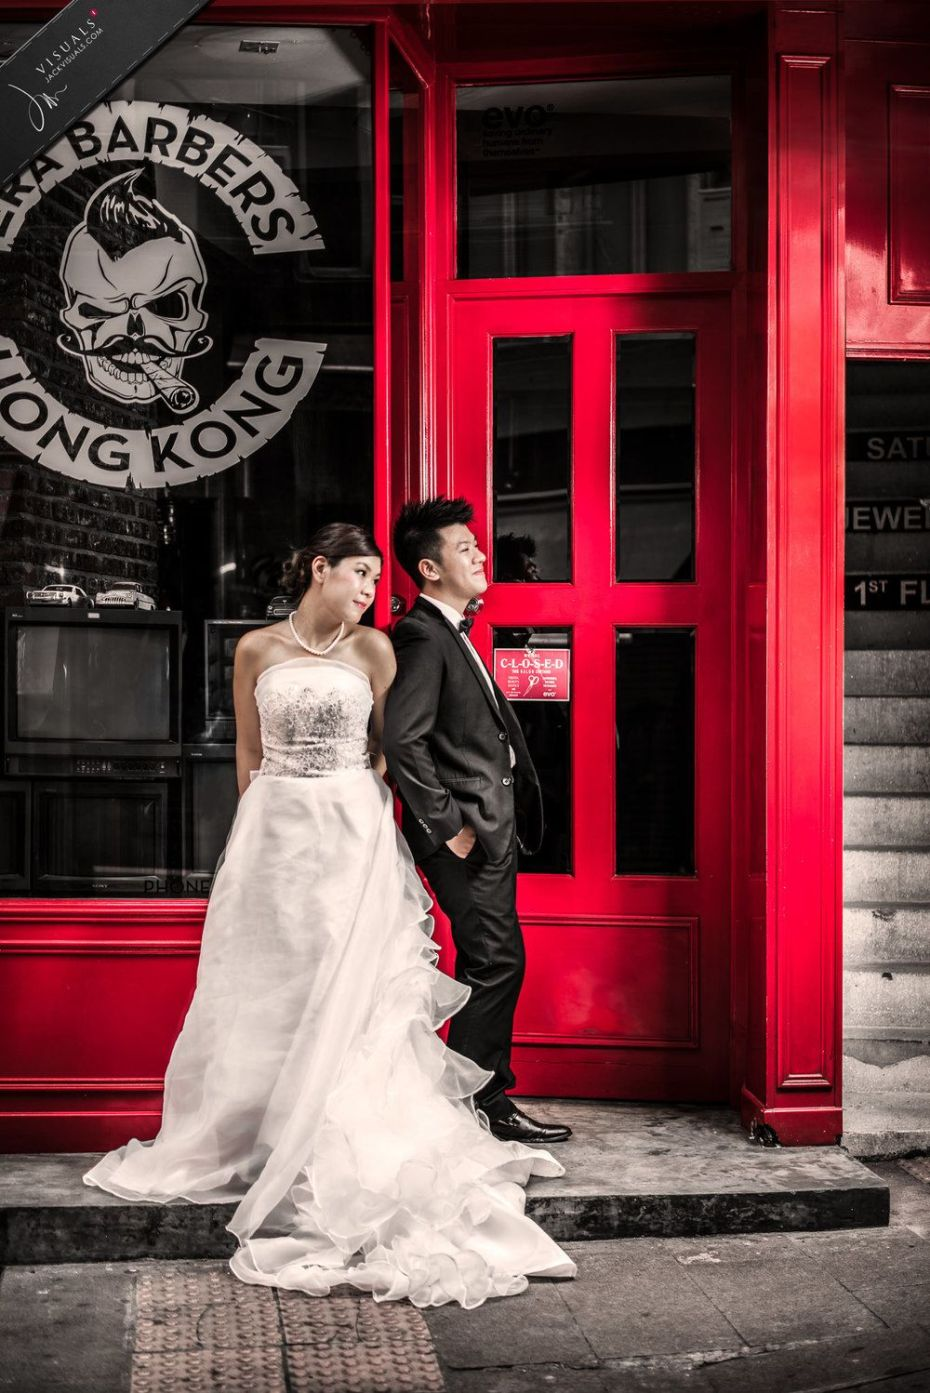 Wedding Photography in Central